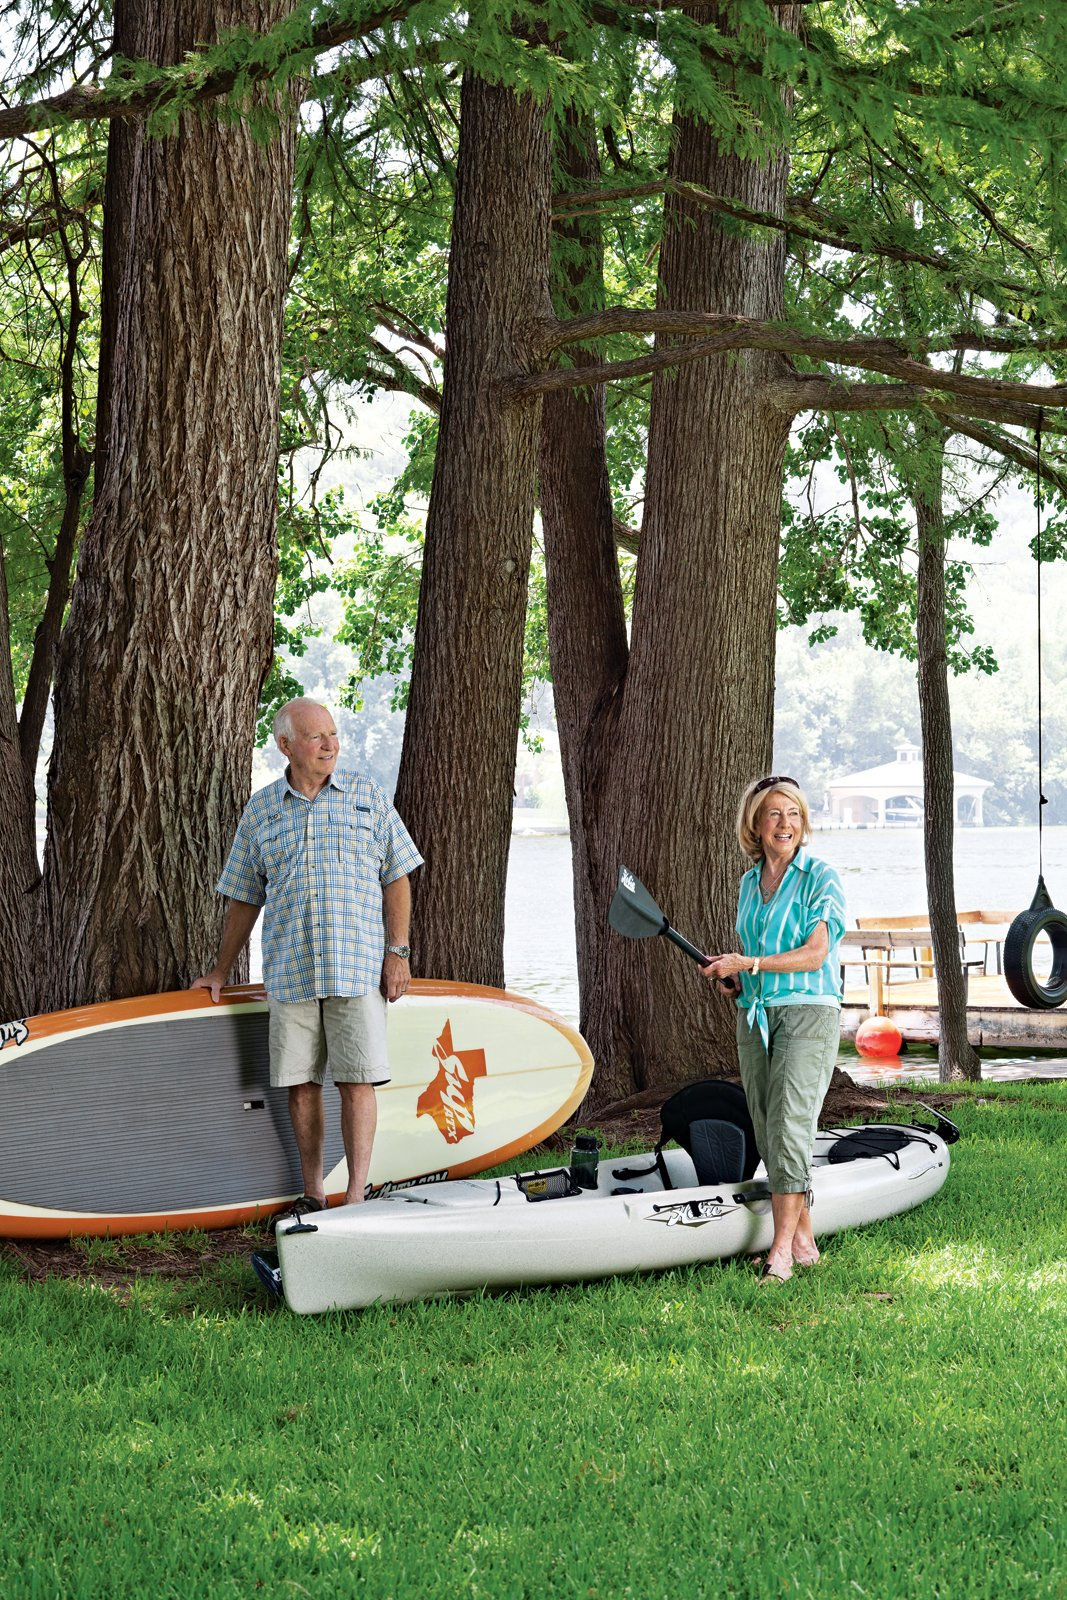 Owners Dudley and Sandy Youman keep a flotilla of watercraft ready for entertaining their children and grandchildren. Interior designer Herb Schoening worked with the Youmans on the furnishings and finishes for their 480-square-foot cabin. Photo by: Kimberly Davis  Photo 2 of 6 in Small and Modern: A Family Lakeside Getaway in Texas